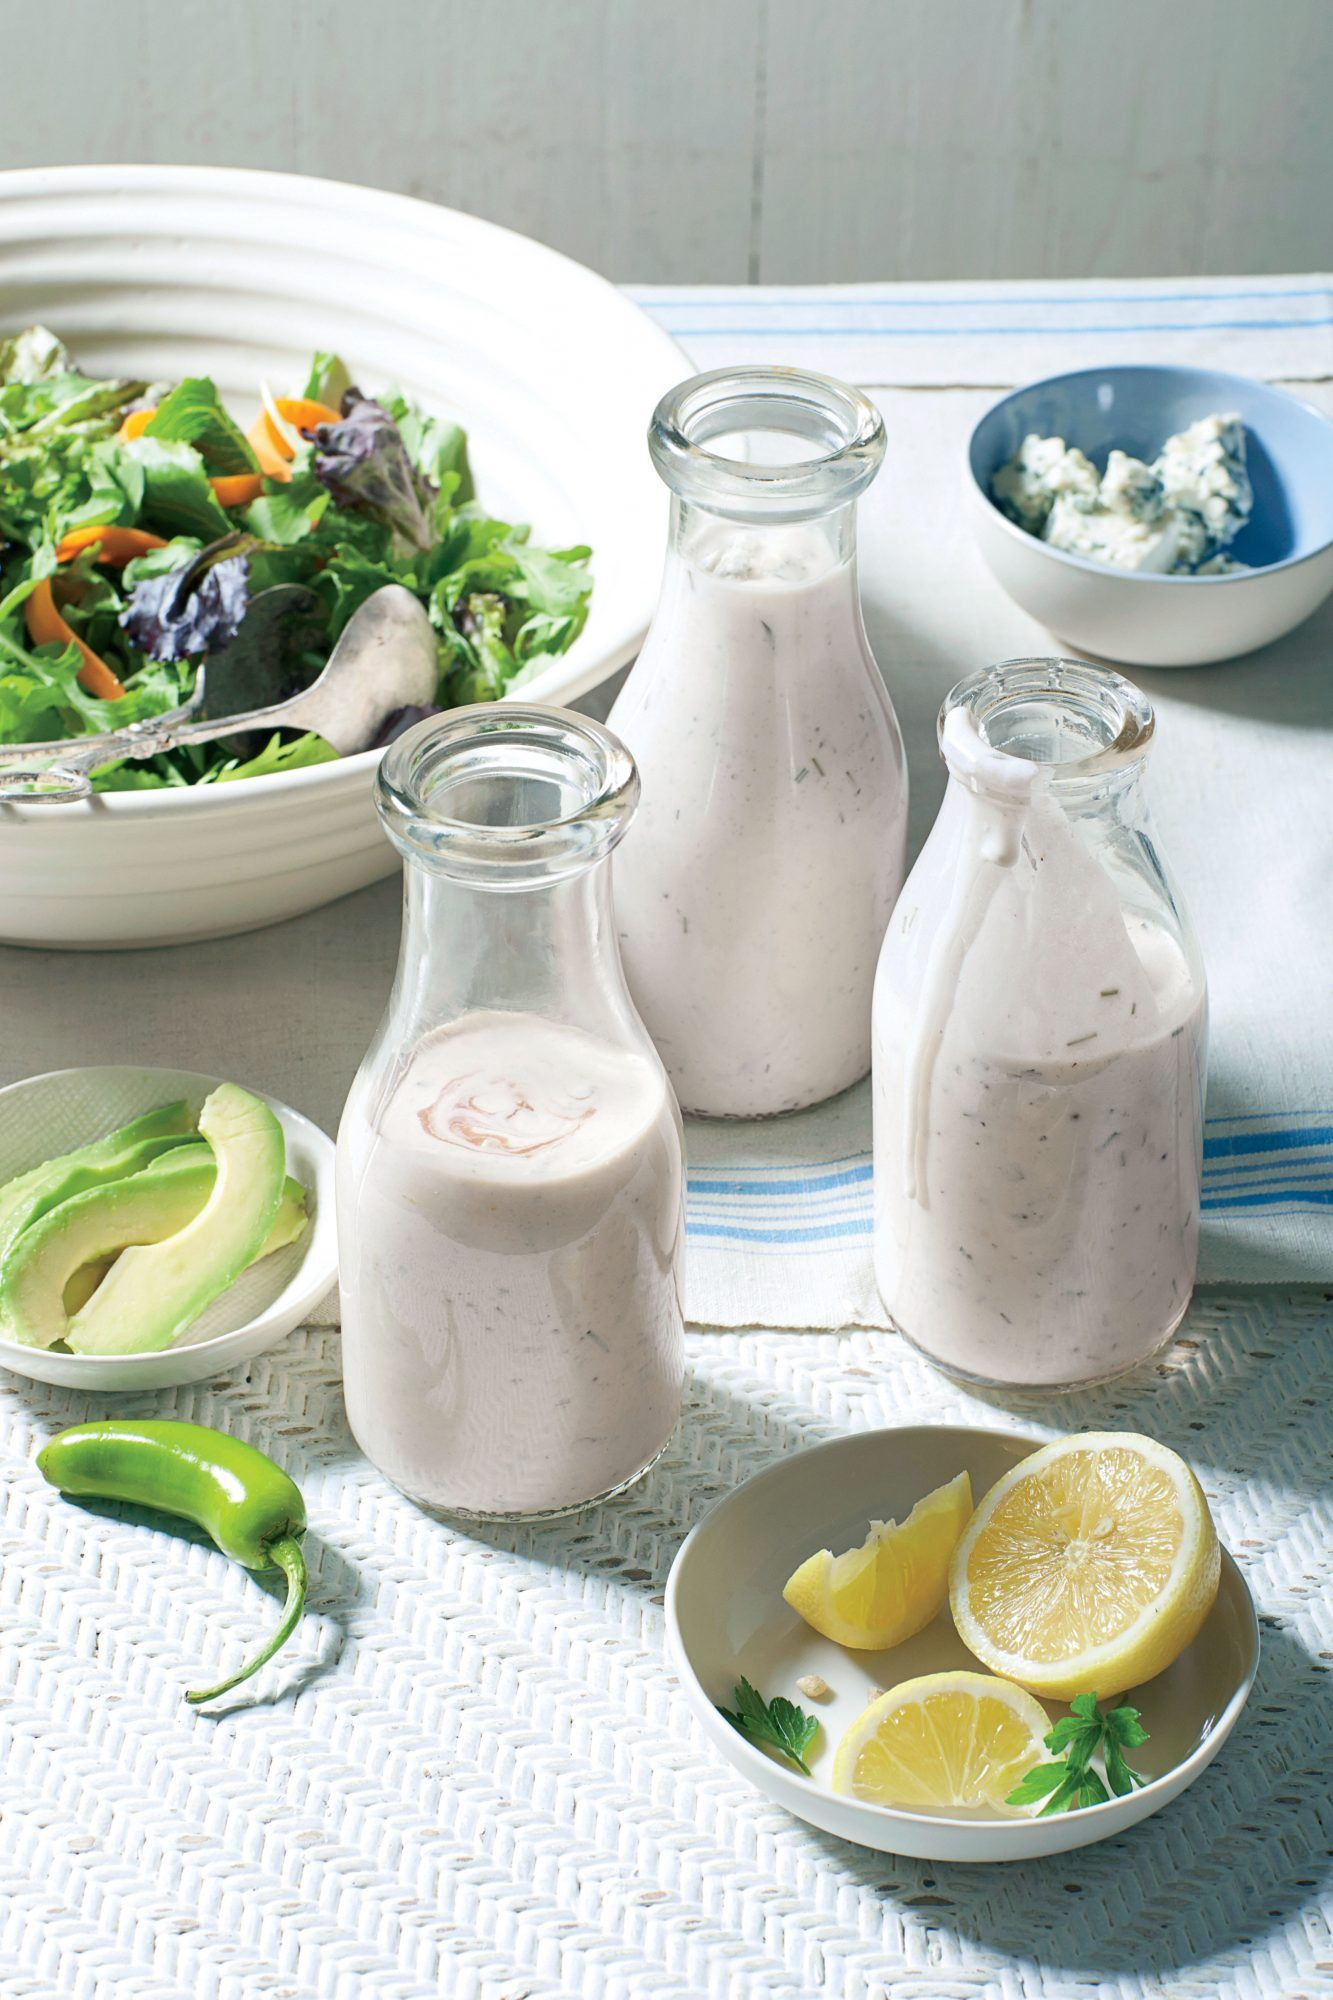 Should You Freeze Buttermilk In 2020 Salad Dressing Recipes Easy Salad Dressing Recipes Easy Salad Dressing